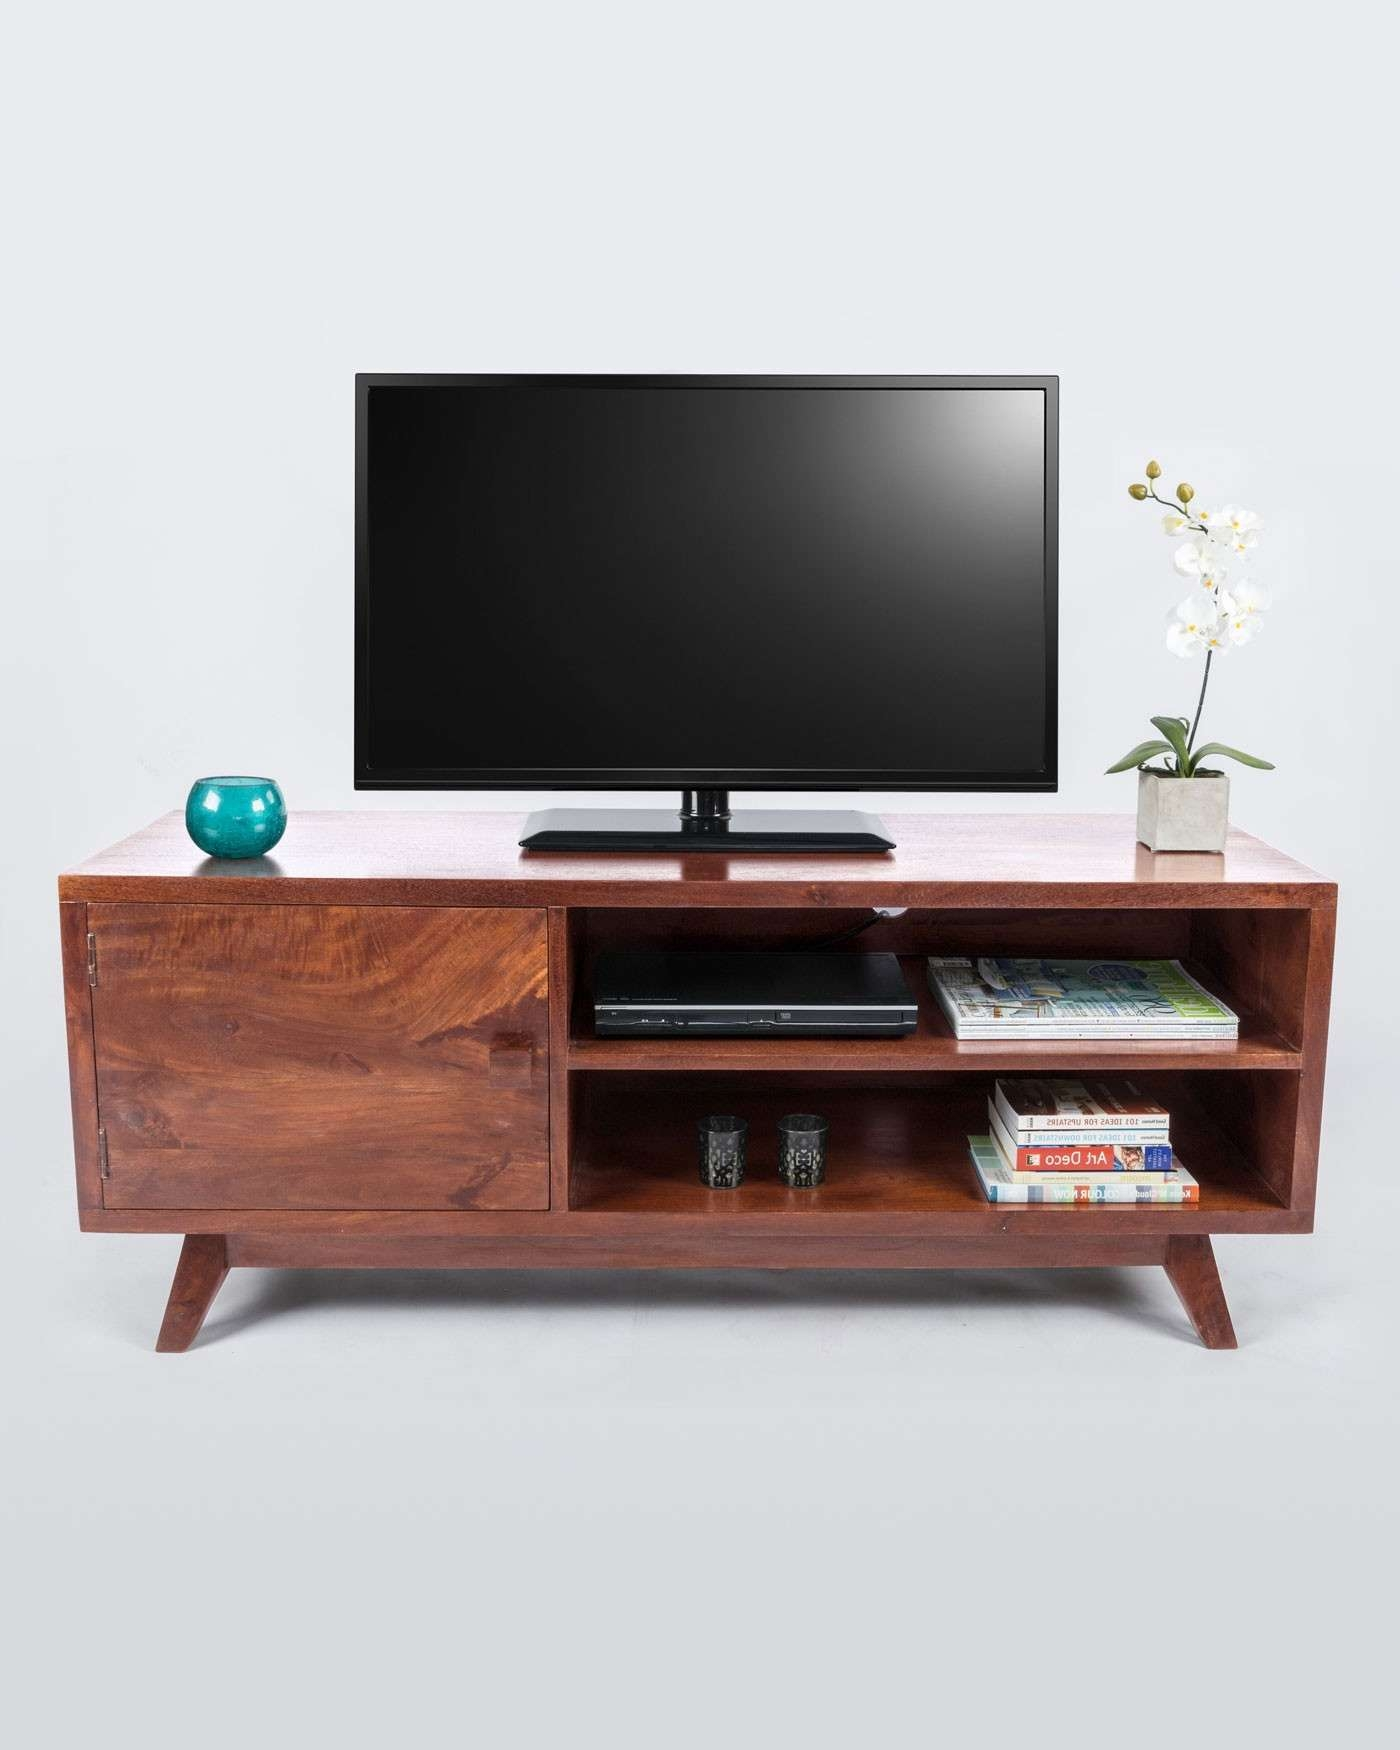 Dark Wood Tv Stand With Shelf Retro Design 100% Solid Wood Within Dark Tv Stands (View 15 of 15)